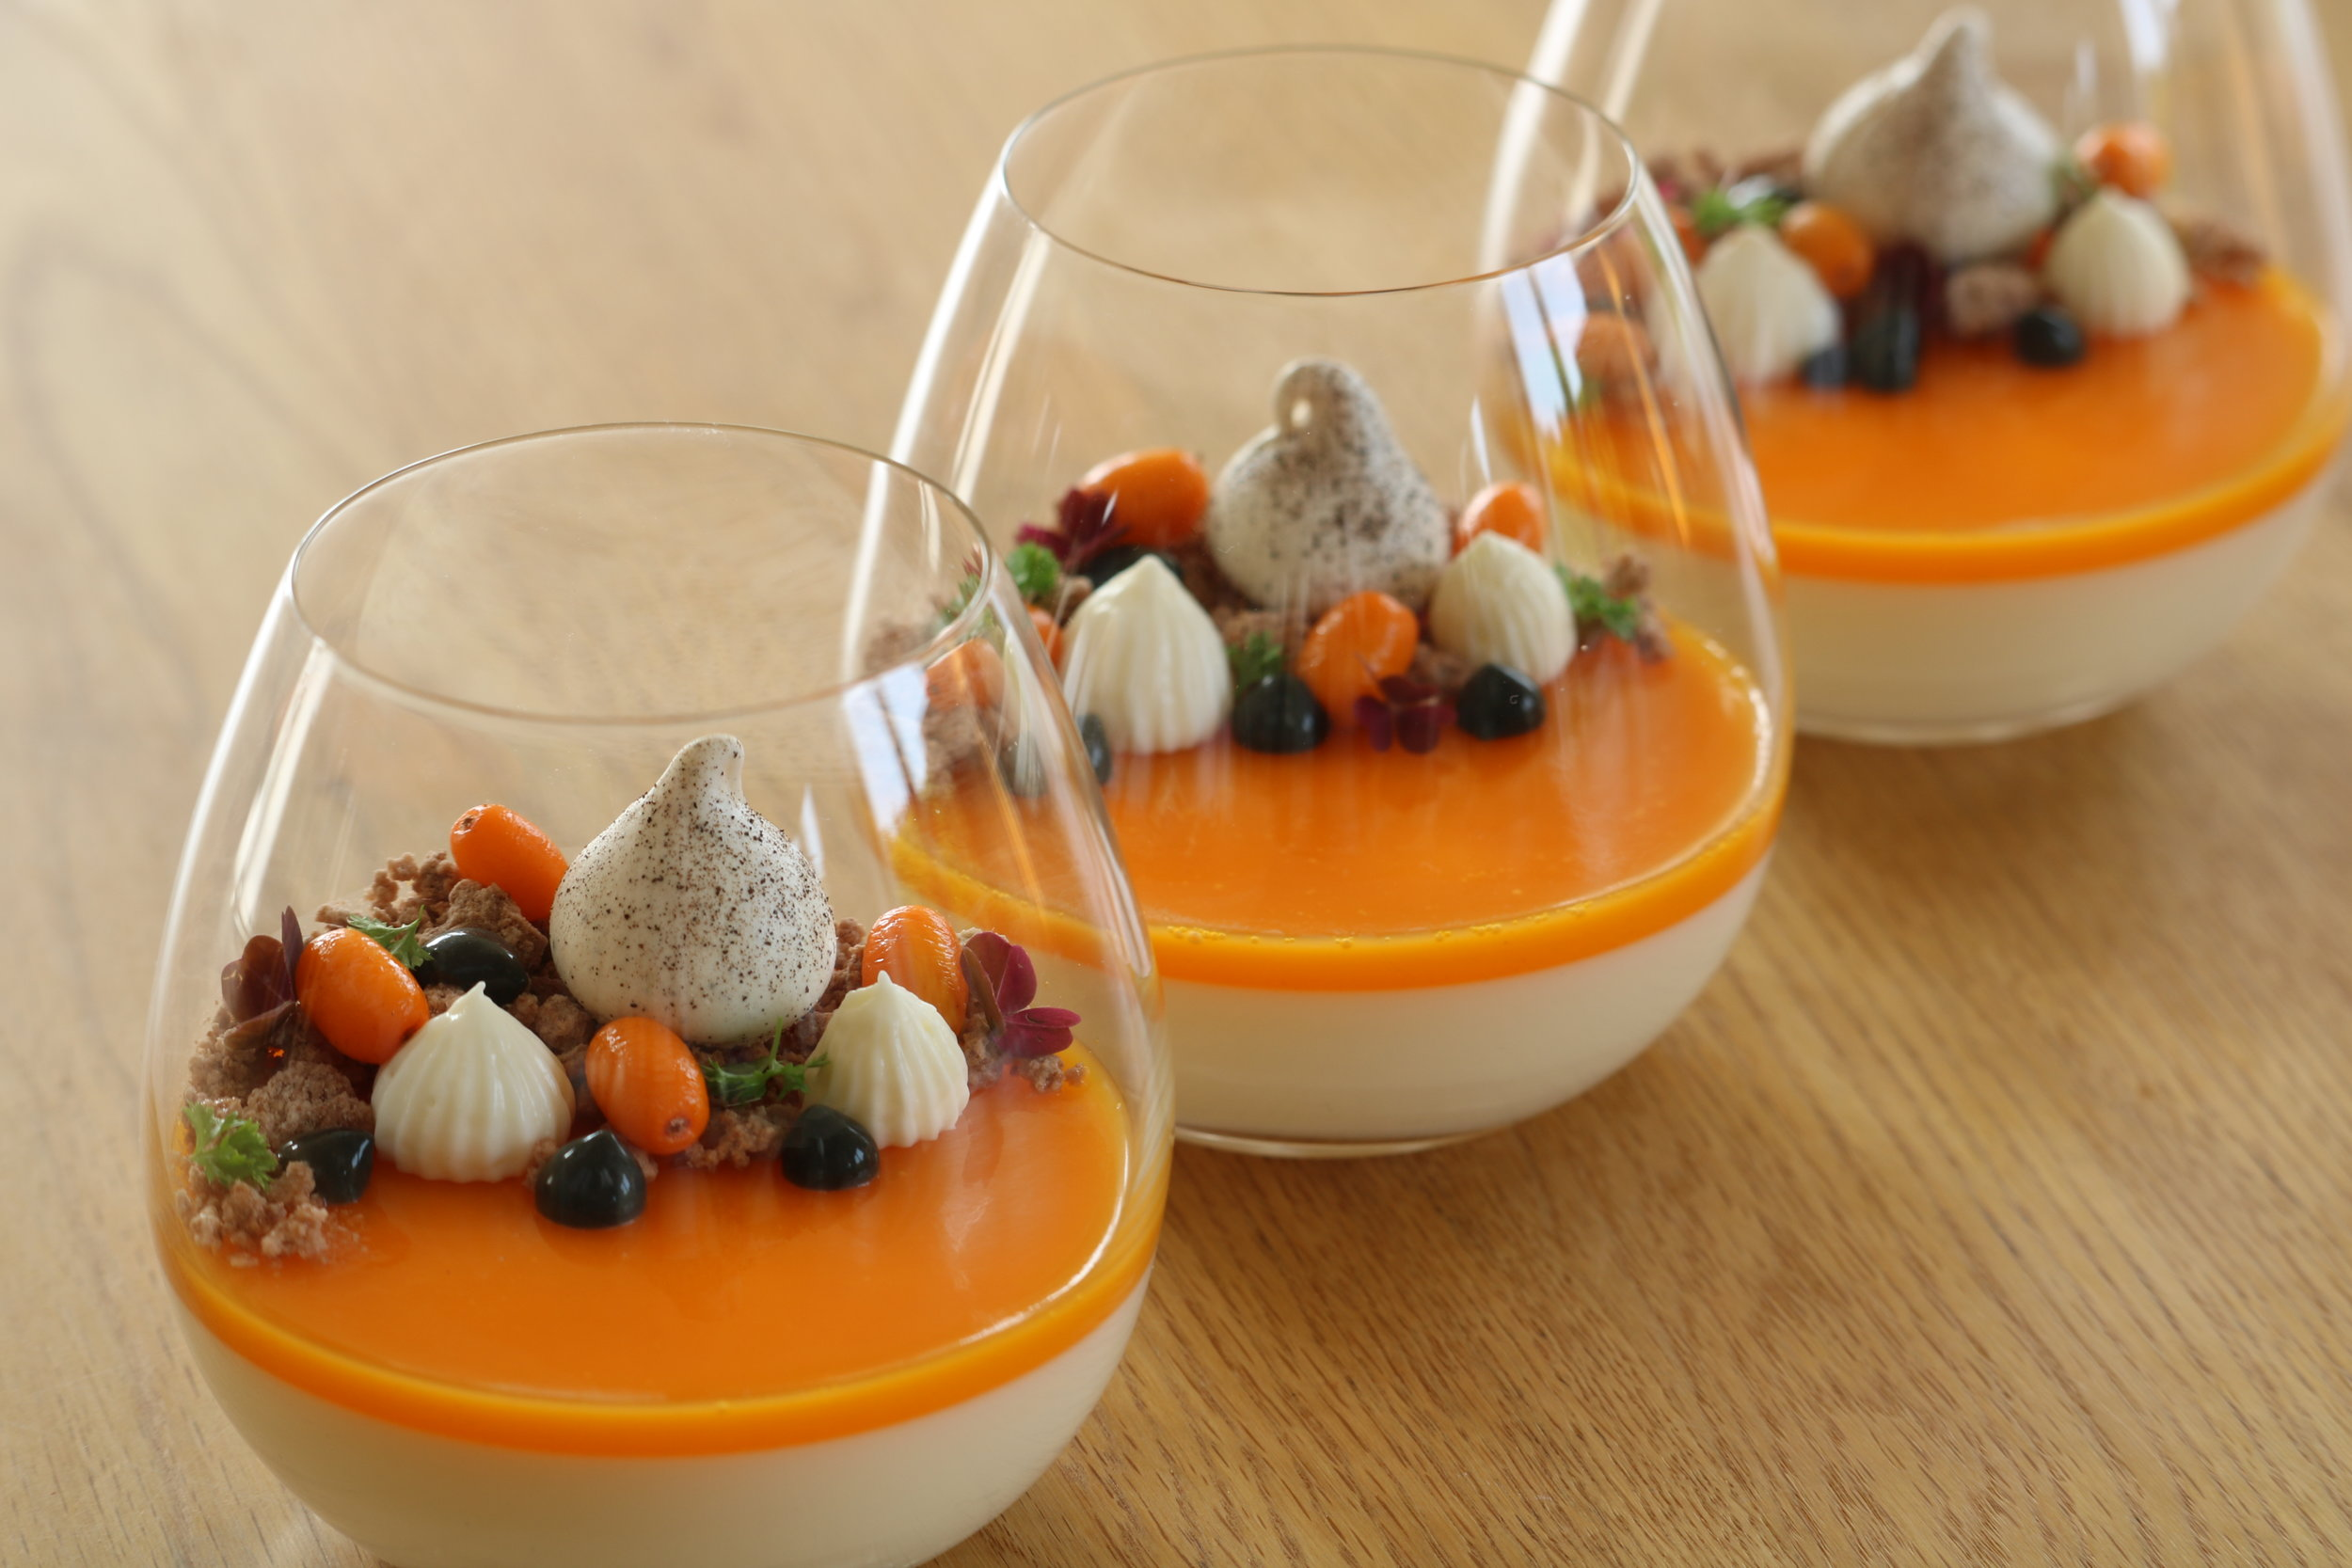 vanilla panna cotta with a cloudberry jelly